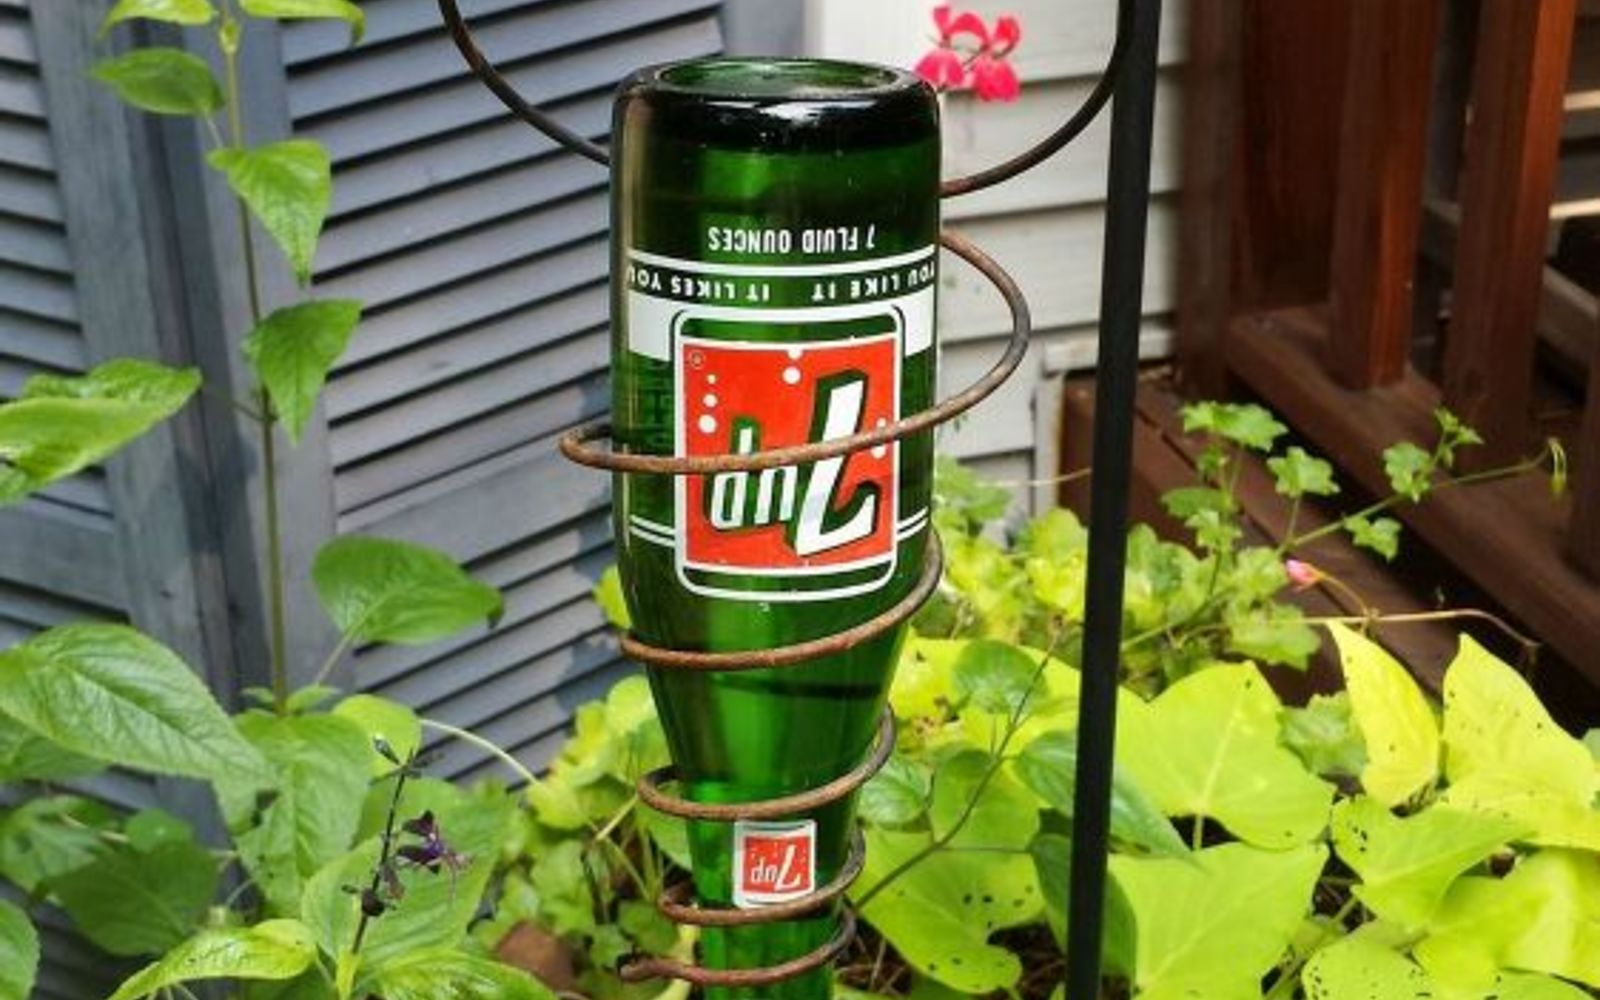 s 15 incredible backyard ideas using empty wine bottles, gardening, outdoor living, repurposing upcycling, Make a hummingbird feeder for every tree